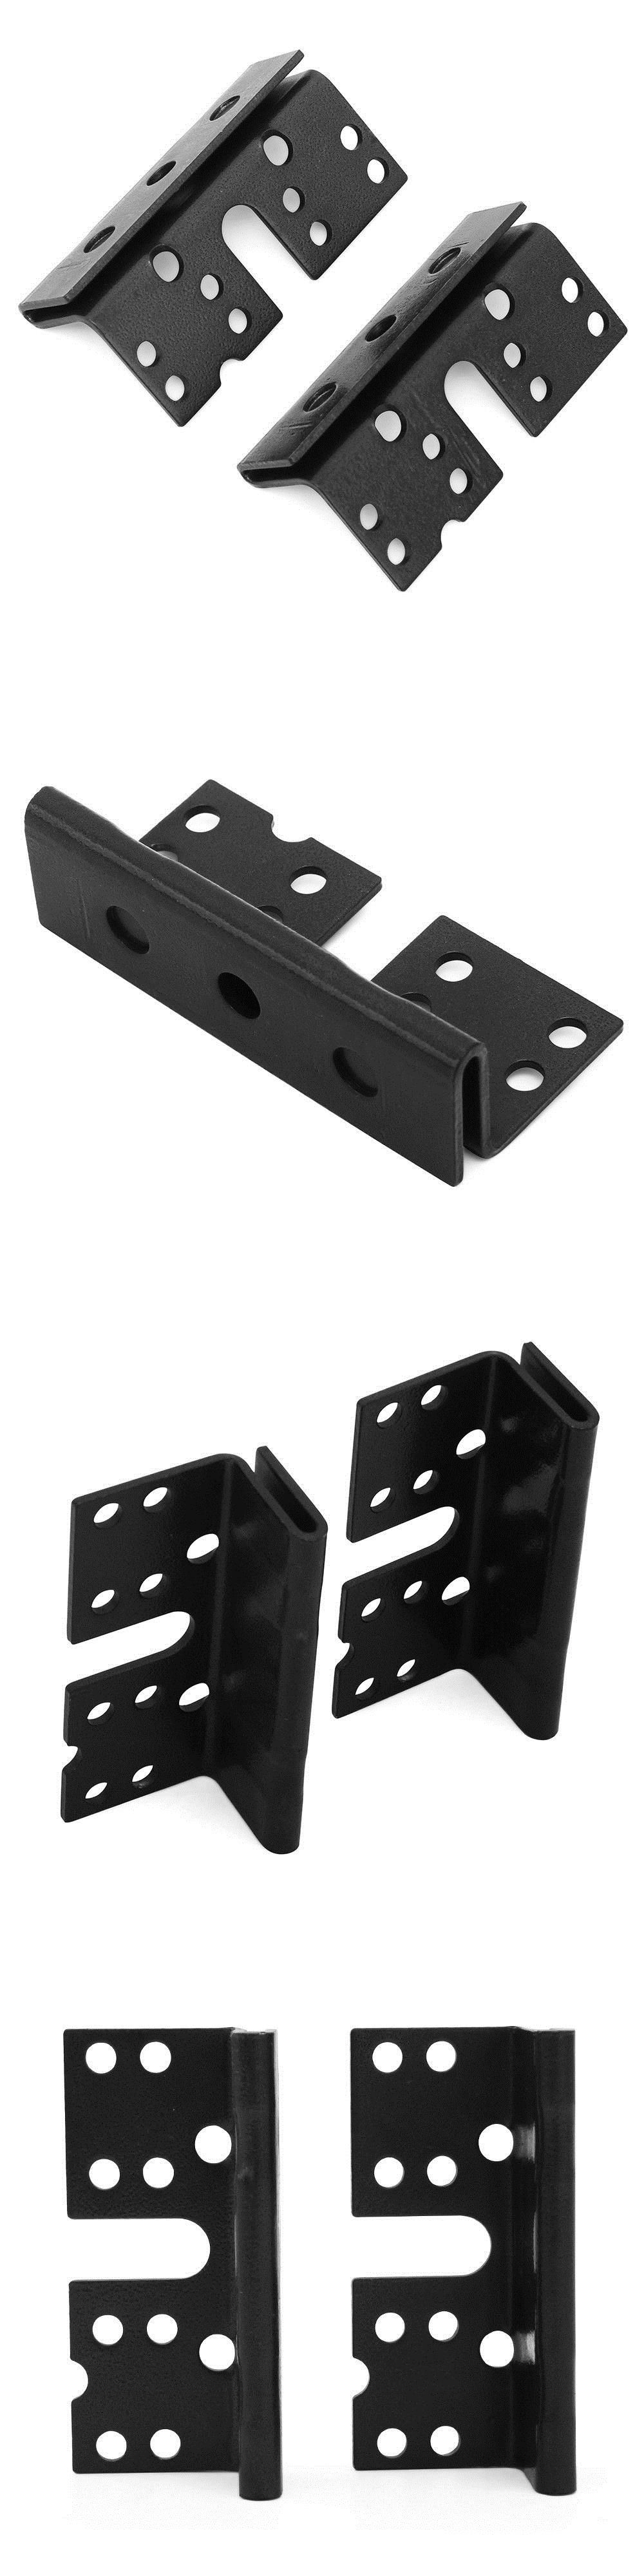 Details about 2P Headboard / Footboard Bed Rail Hanger